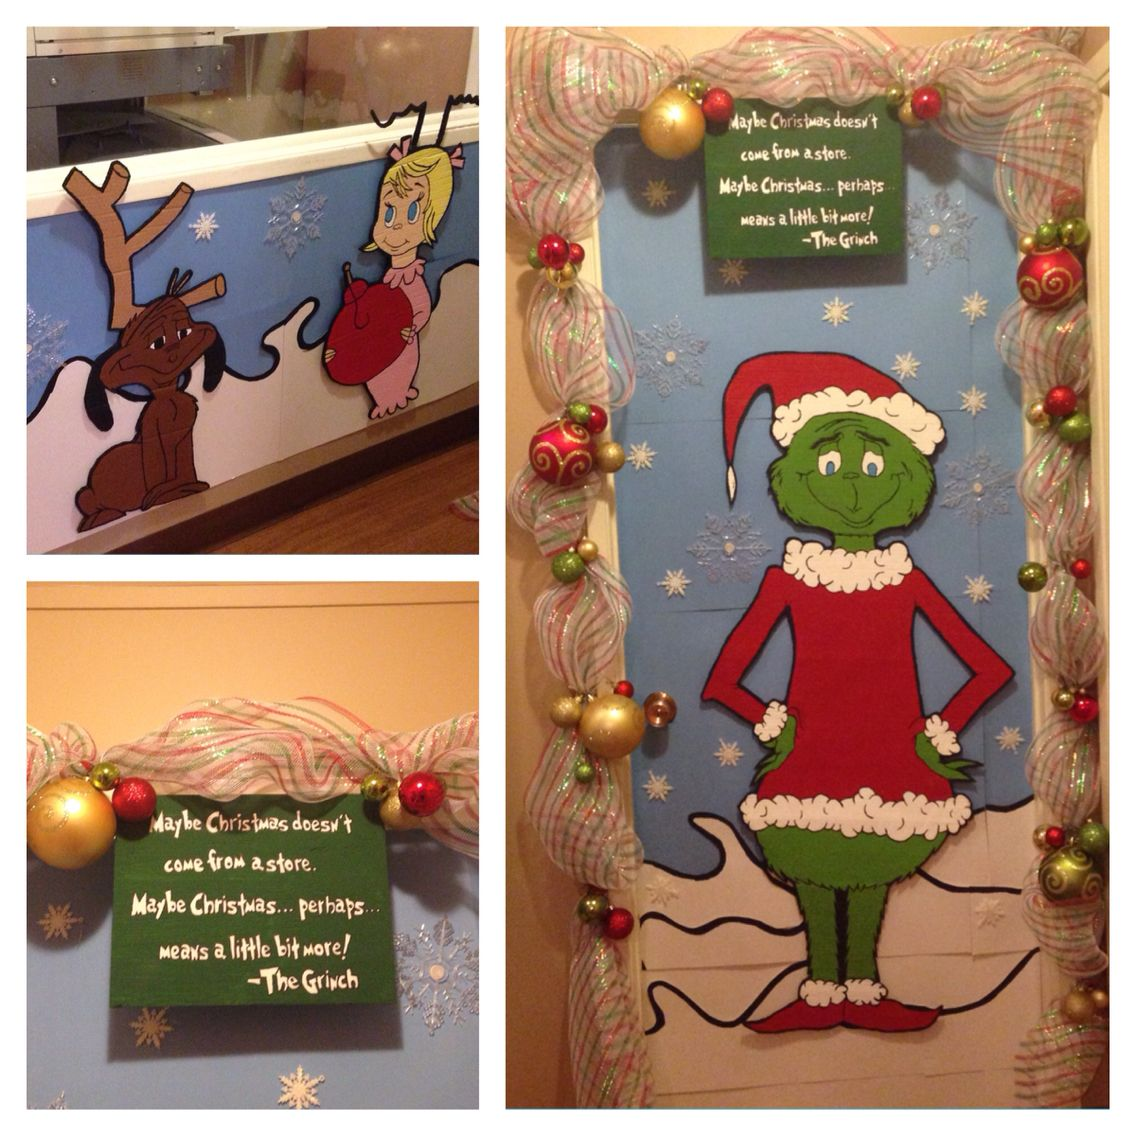 Grinch Christmas Door I Won First Prize Today A Day Off With Pay Grinch Christmas Christmas Door Holiday Decor